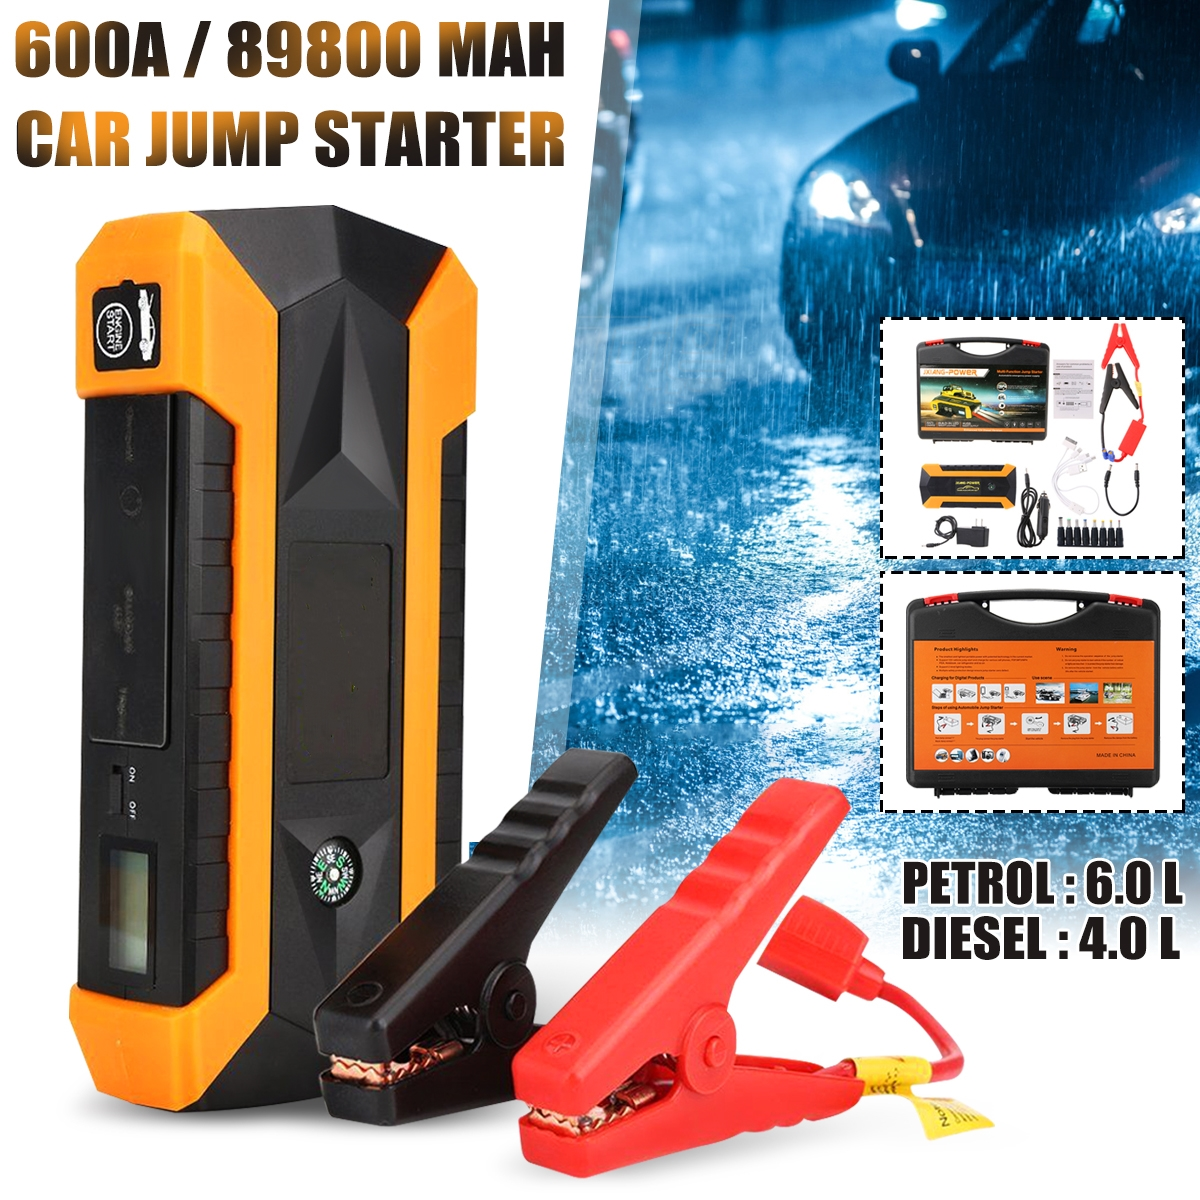 89800mAh Car Jump Starter 12V 4USB 600A Portable Car Battery Booster Charger Booster Power Bank Starting Device Car Starter(China)